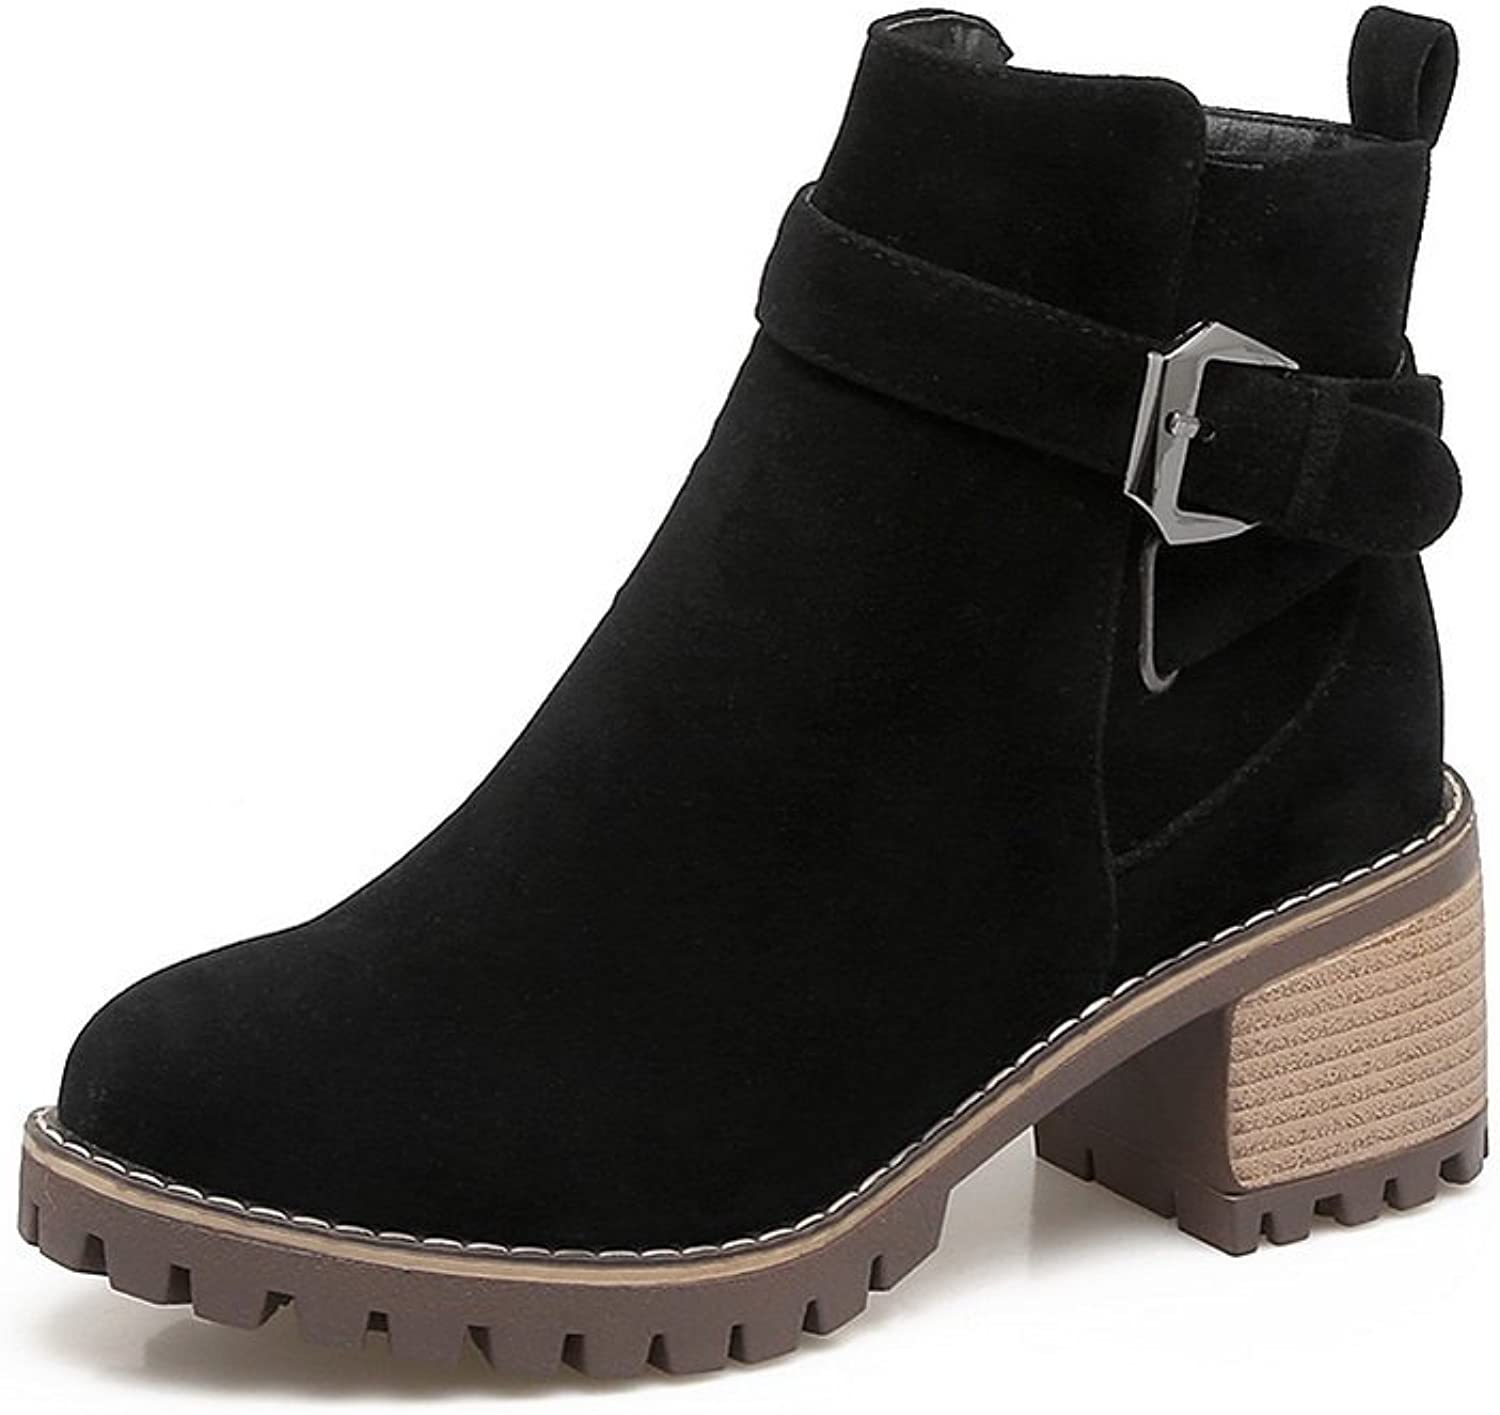 1TO9 Womens Boots Closed-Toe Zip Heeled Waterproof Rubber Warm Lining Solid Smooth Leather Outdoor Urethane Light-Weight Urethane Boots MNS02639